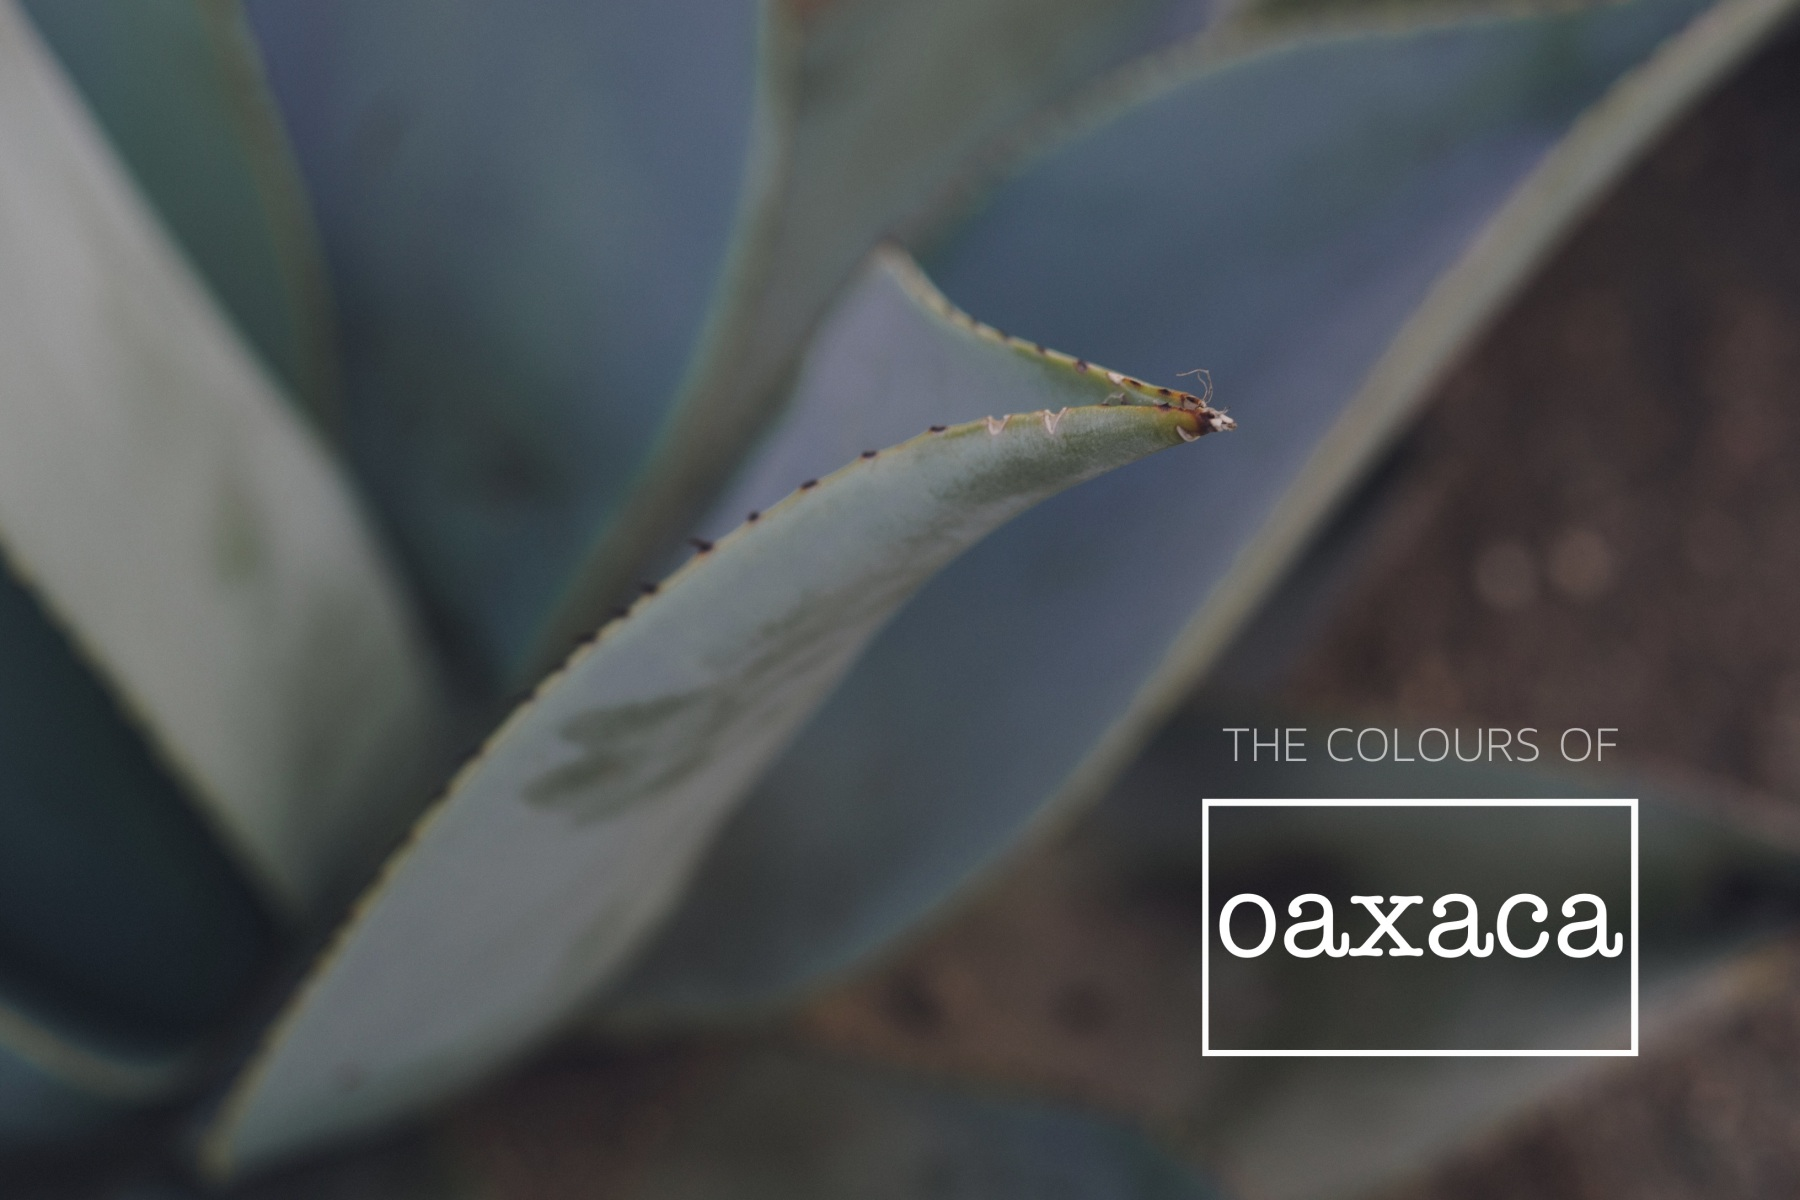 The colors of Oaxaca